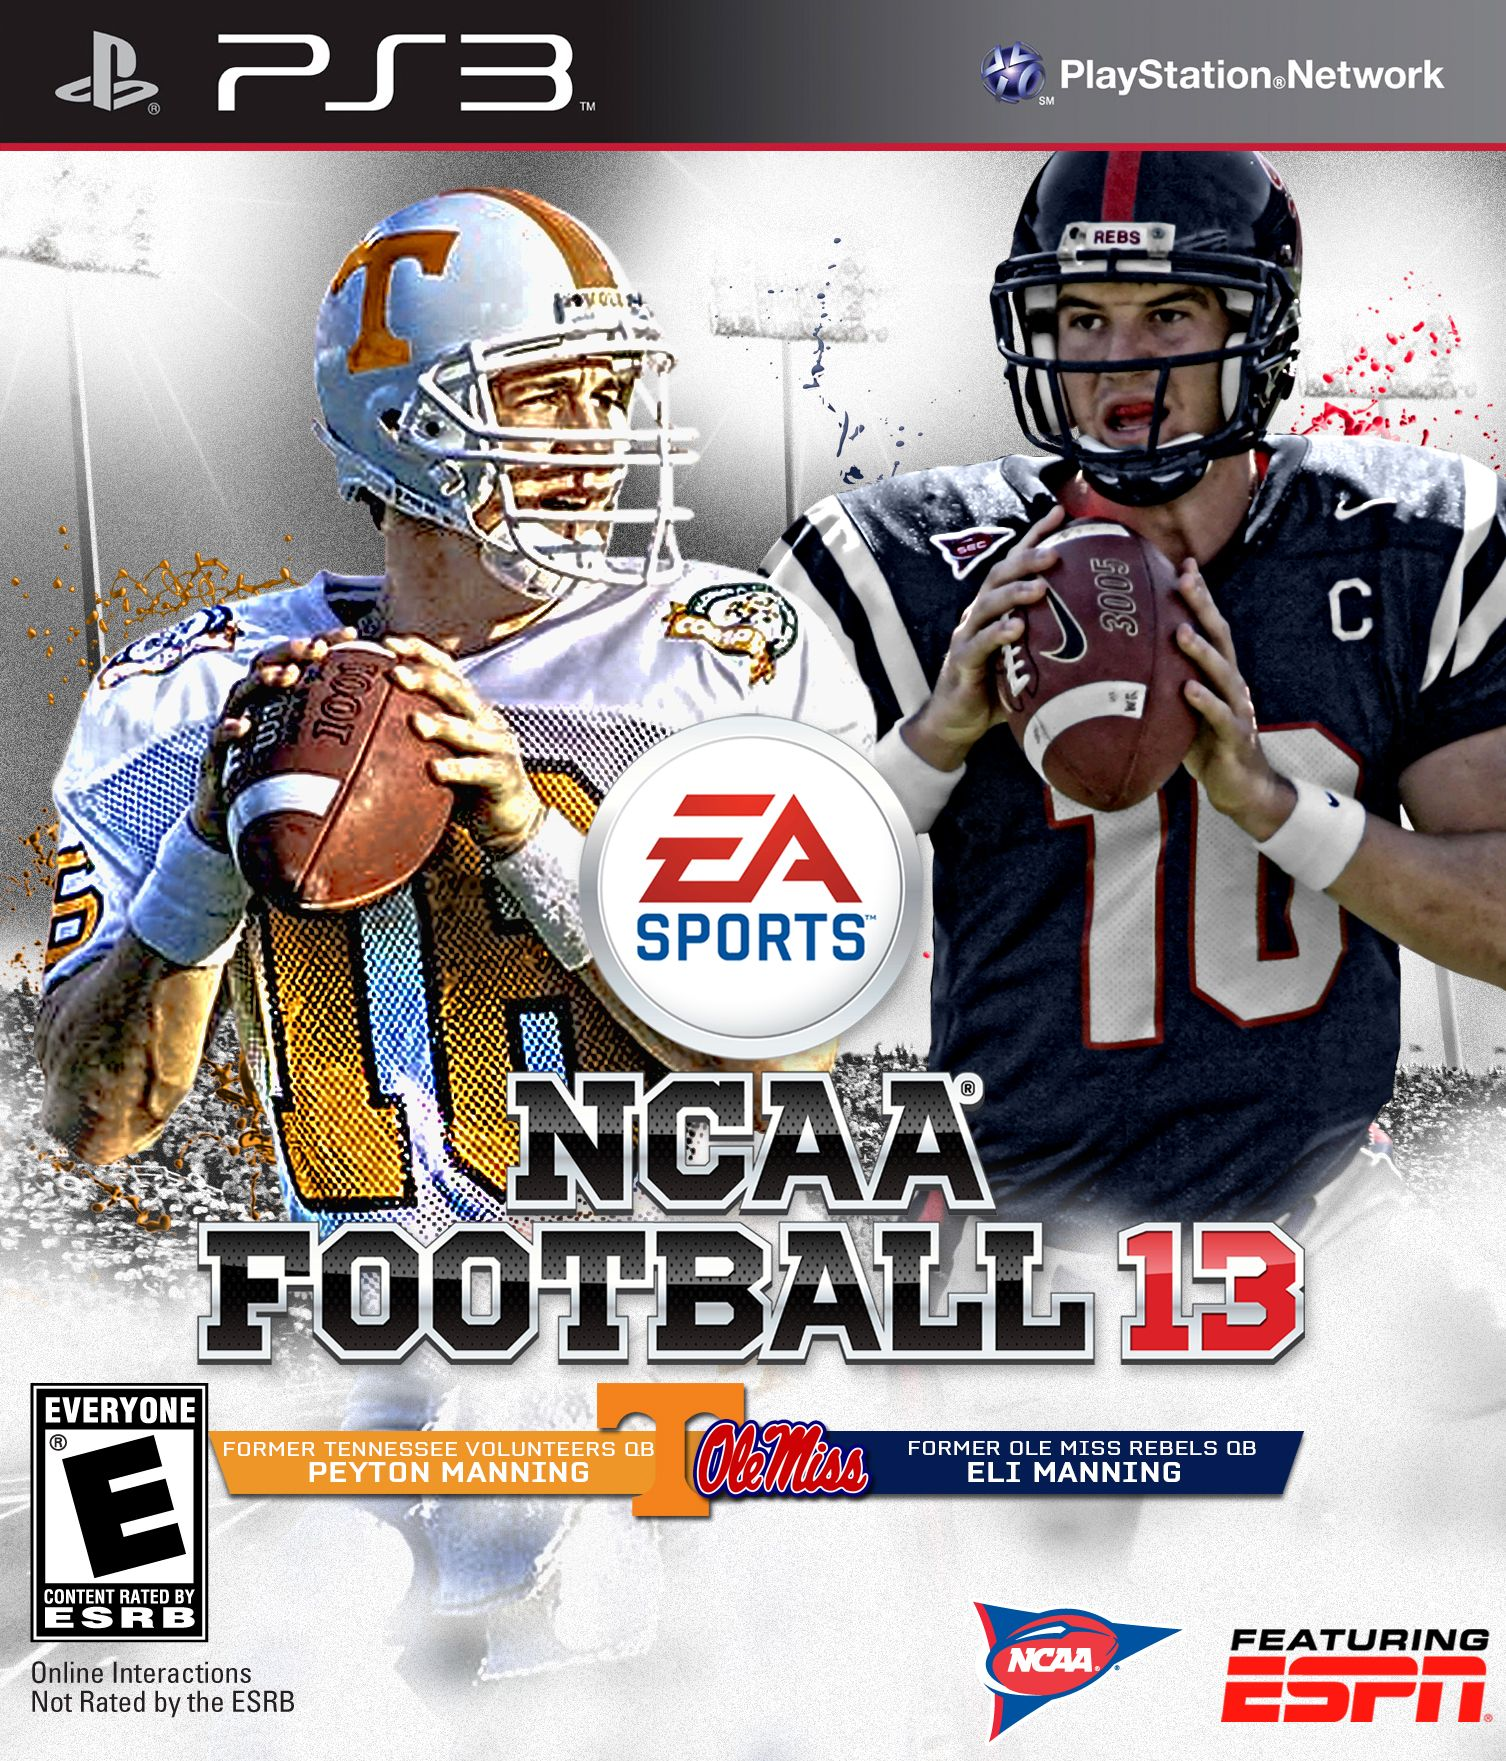 Peyton and Eli Manning Tennessee Voltuneers and Ole Miss Rebels